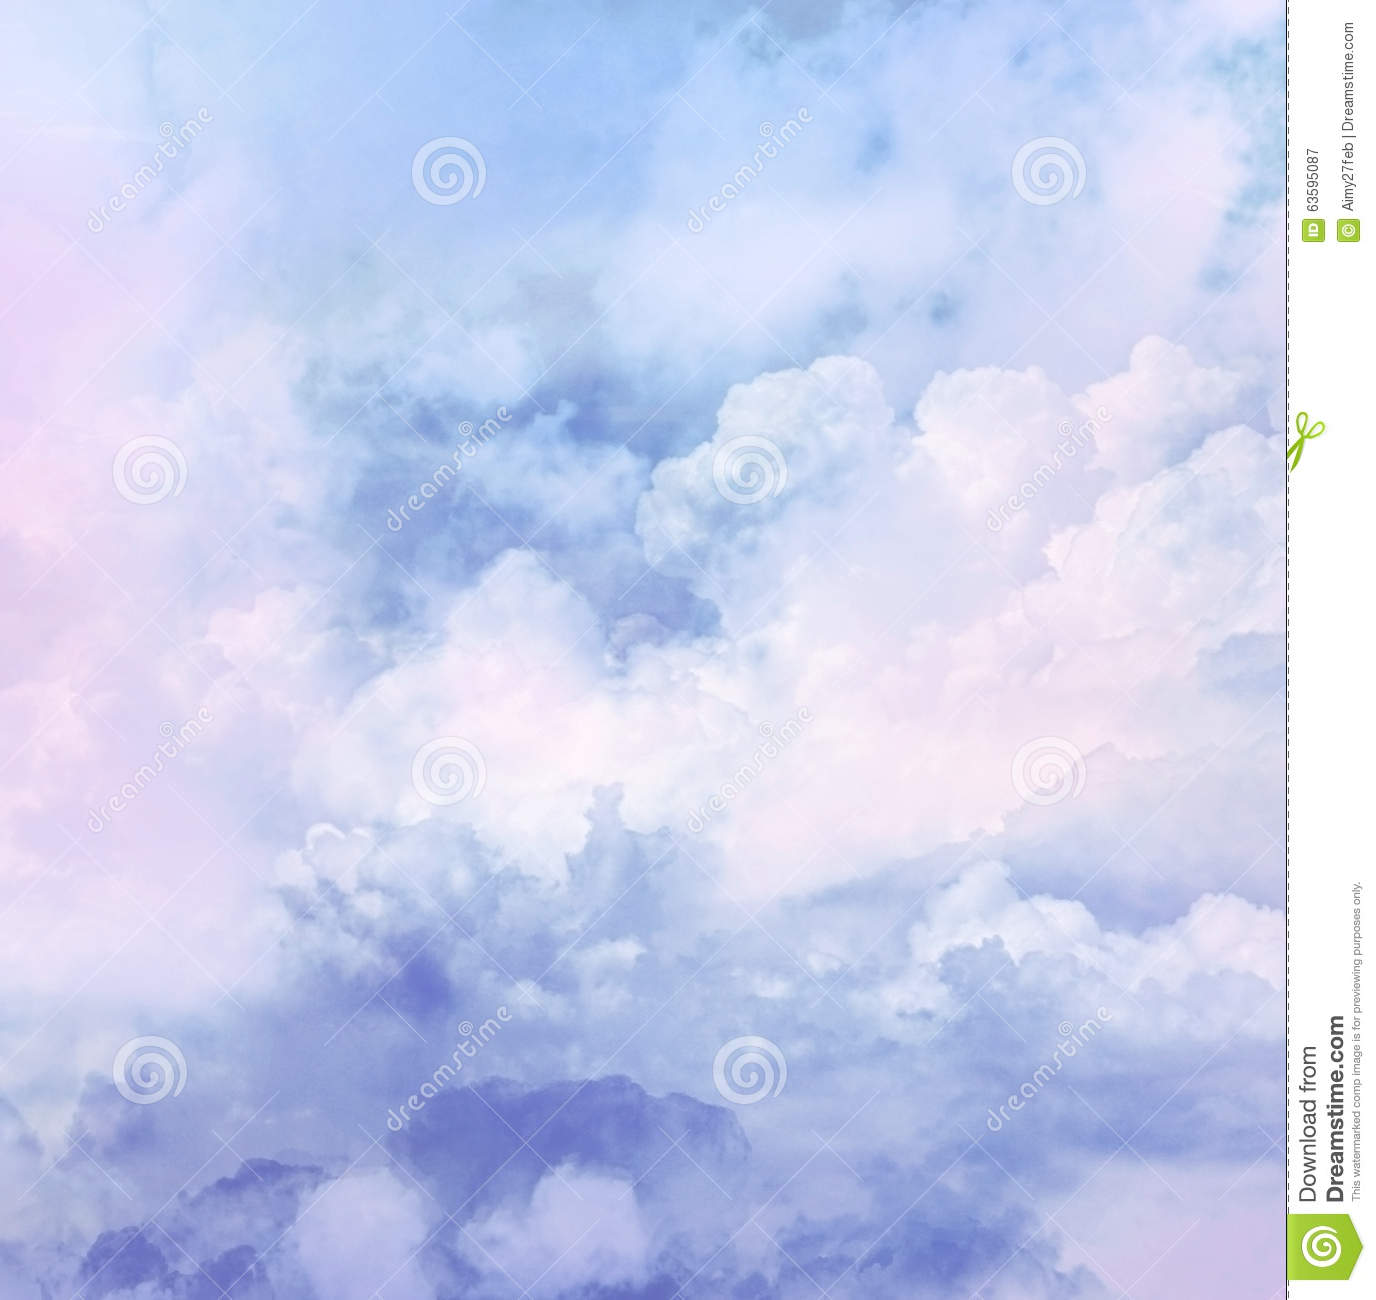 422 Vintage Background Blue Shade Clouds Photos Free Royalty Free Stock Photos From Dreamstime